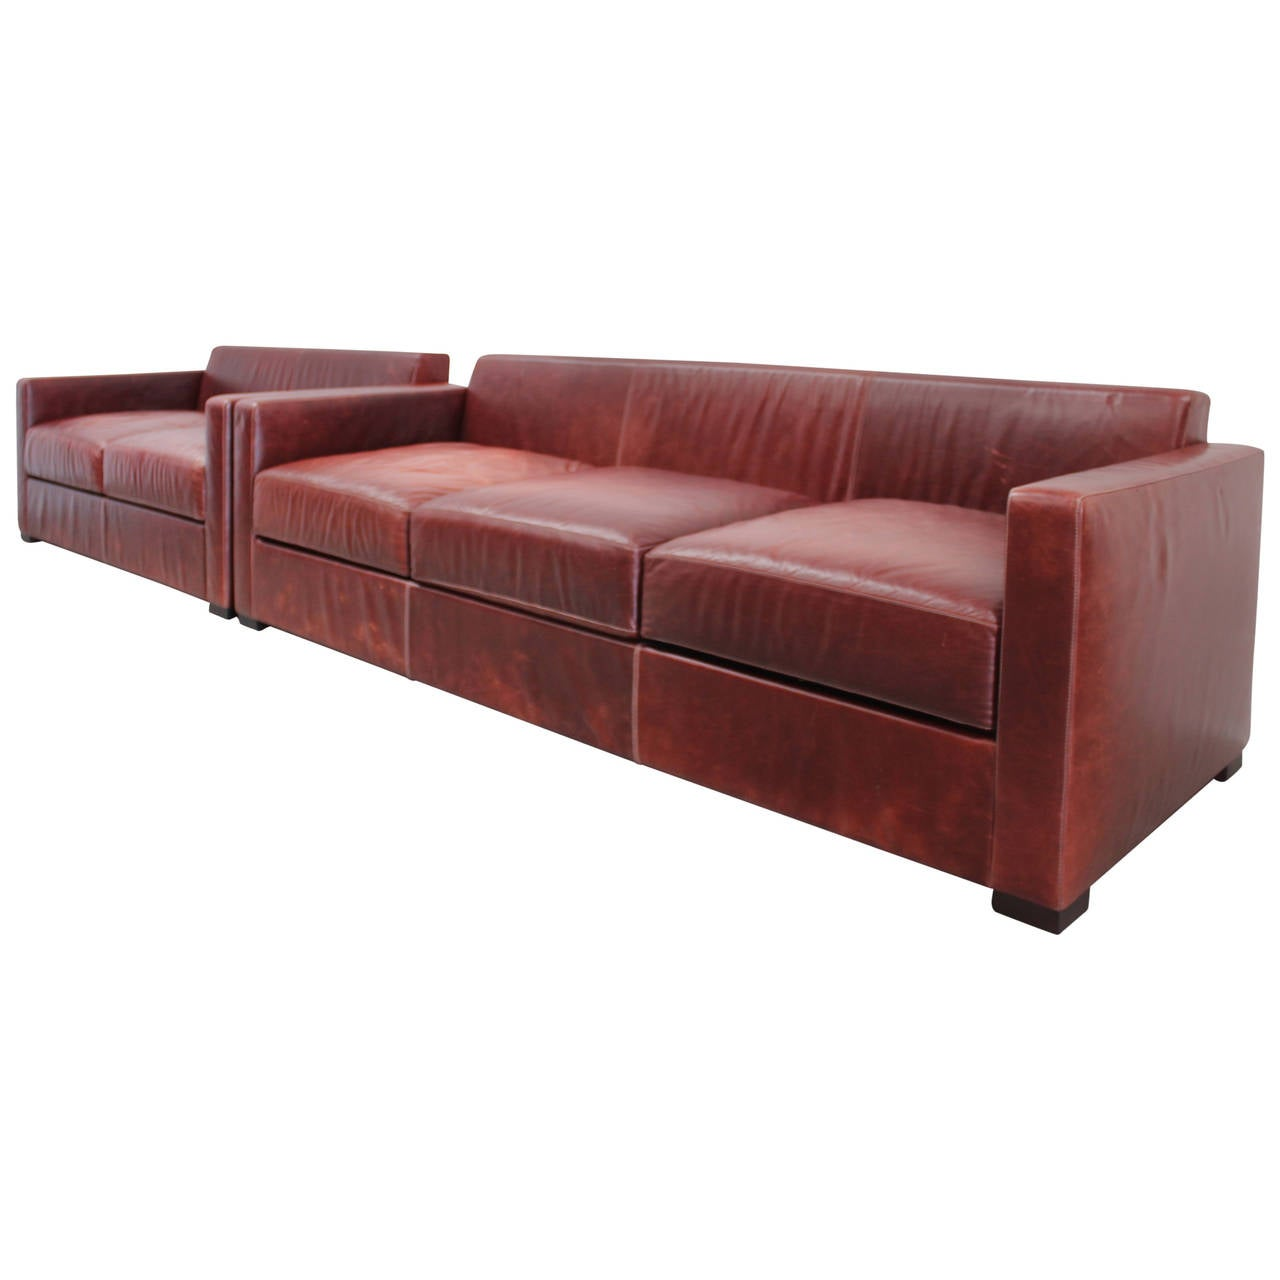 Leather sofa by poltrona frau at 1stdibs - Poltrona Frau Linea A Two And Three Seat Sofa Suite In Leather By